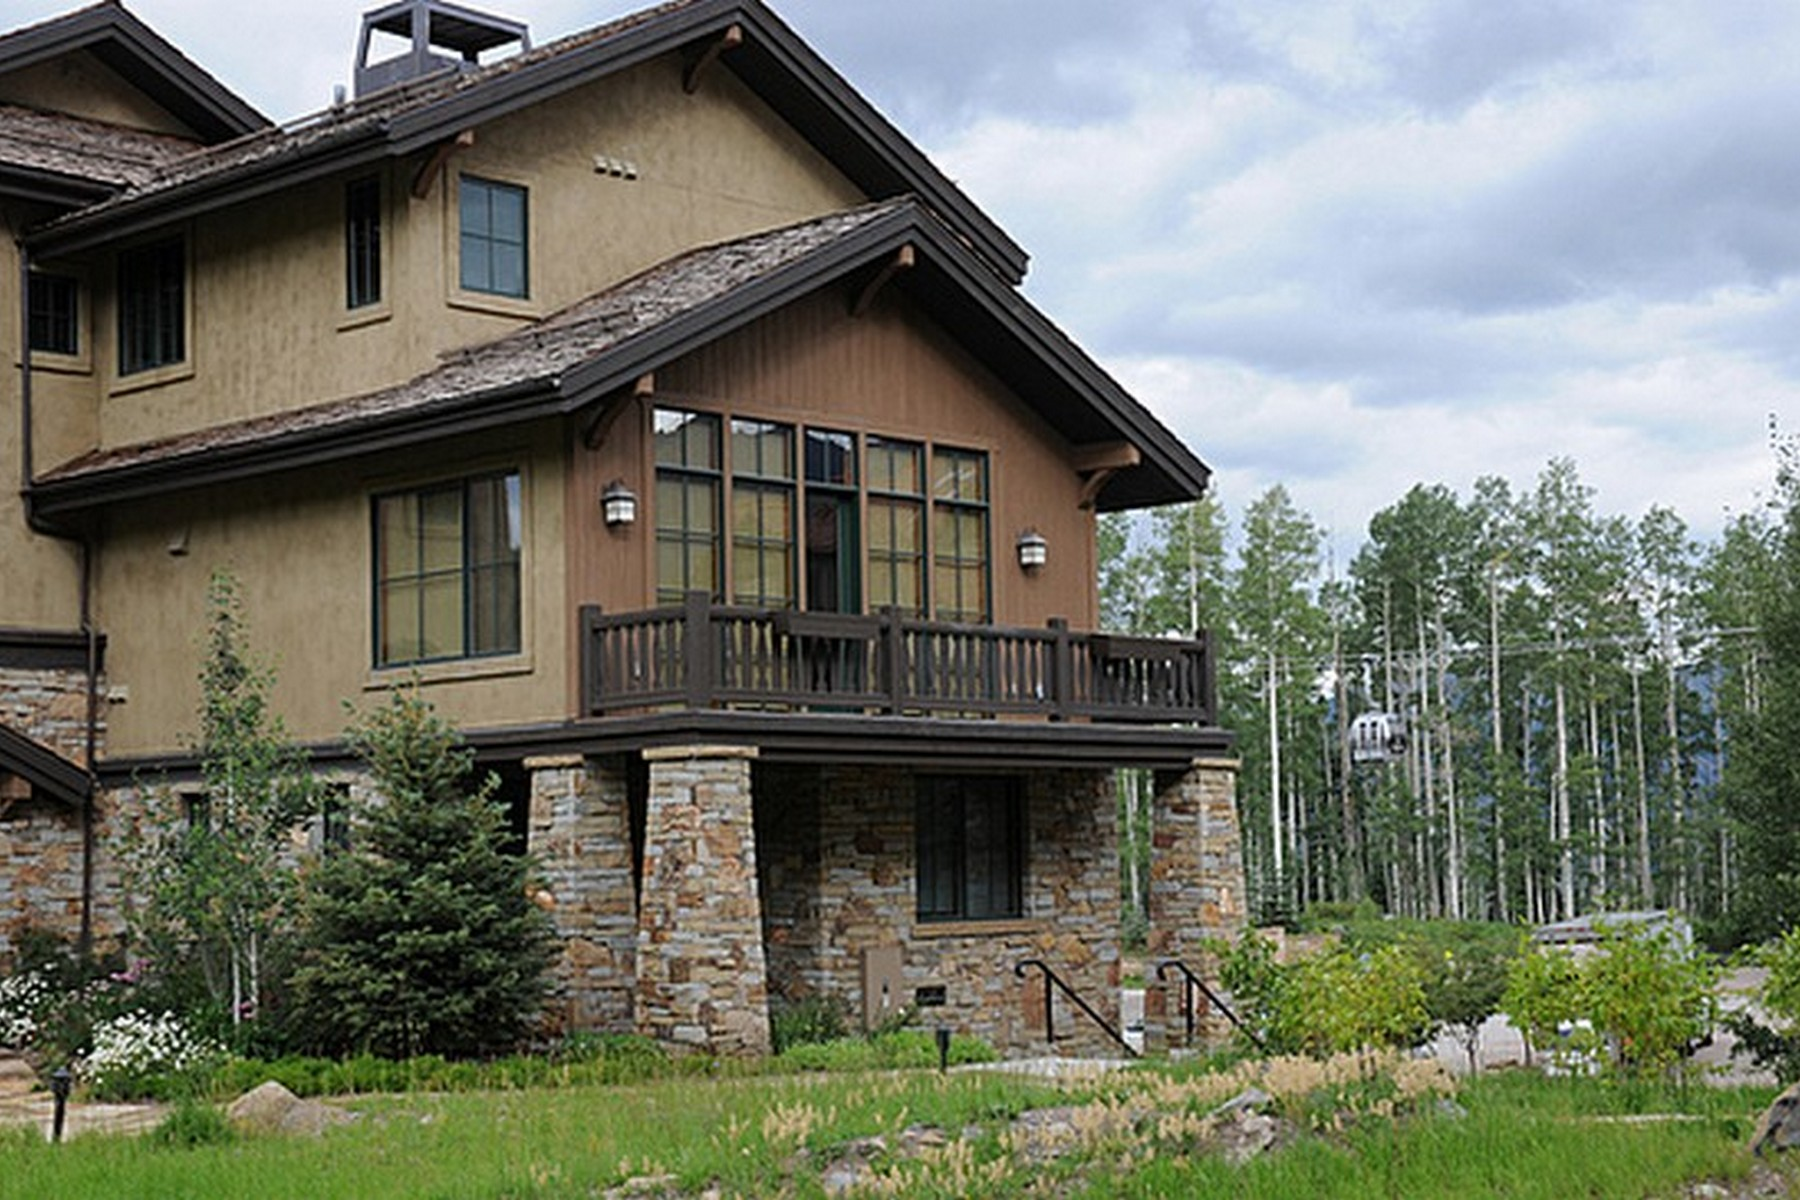 Condominium for Sale at Belvedere Park, Unit 4 112 Lost Creek Lane Mountain Village Mountain Village, Telluride, Colorado, 81435 United States